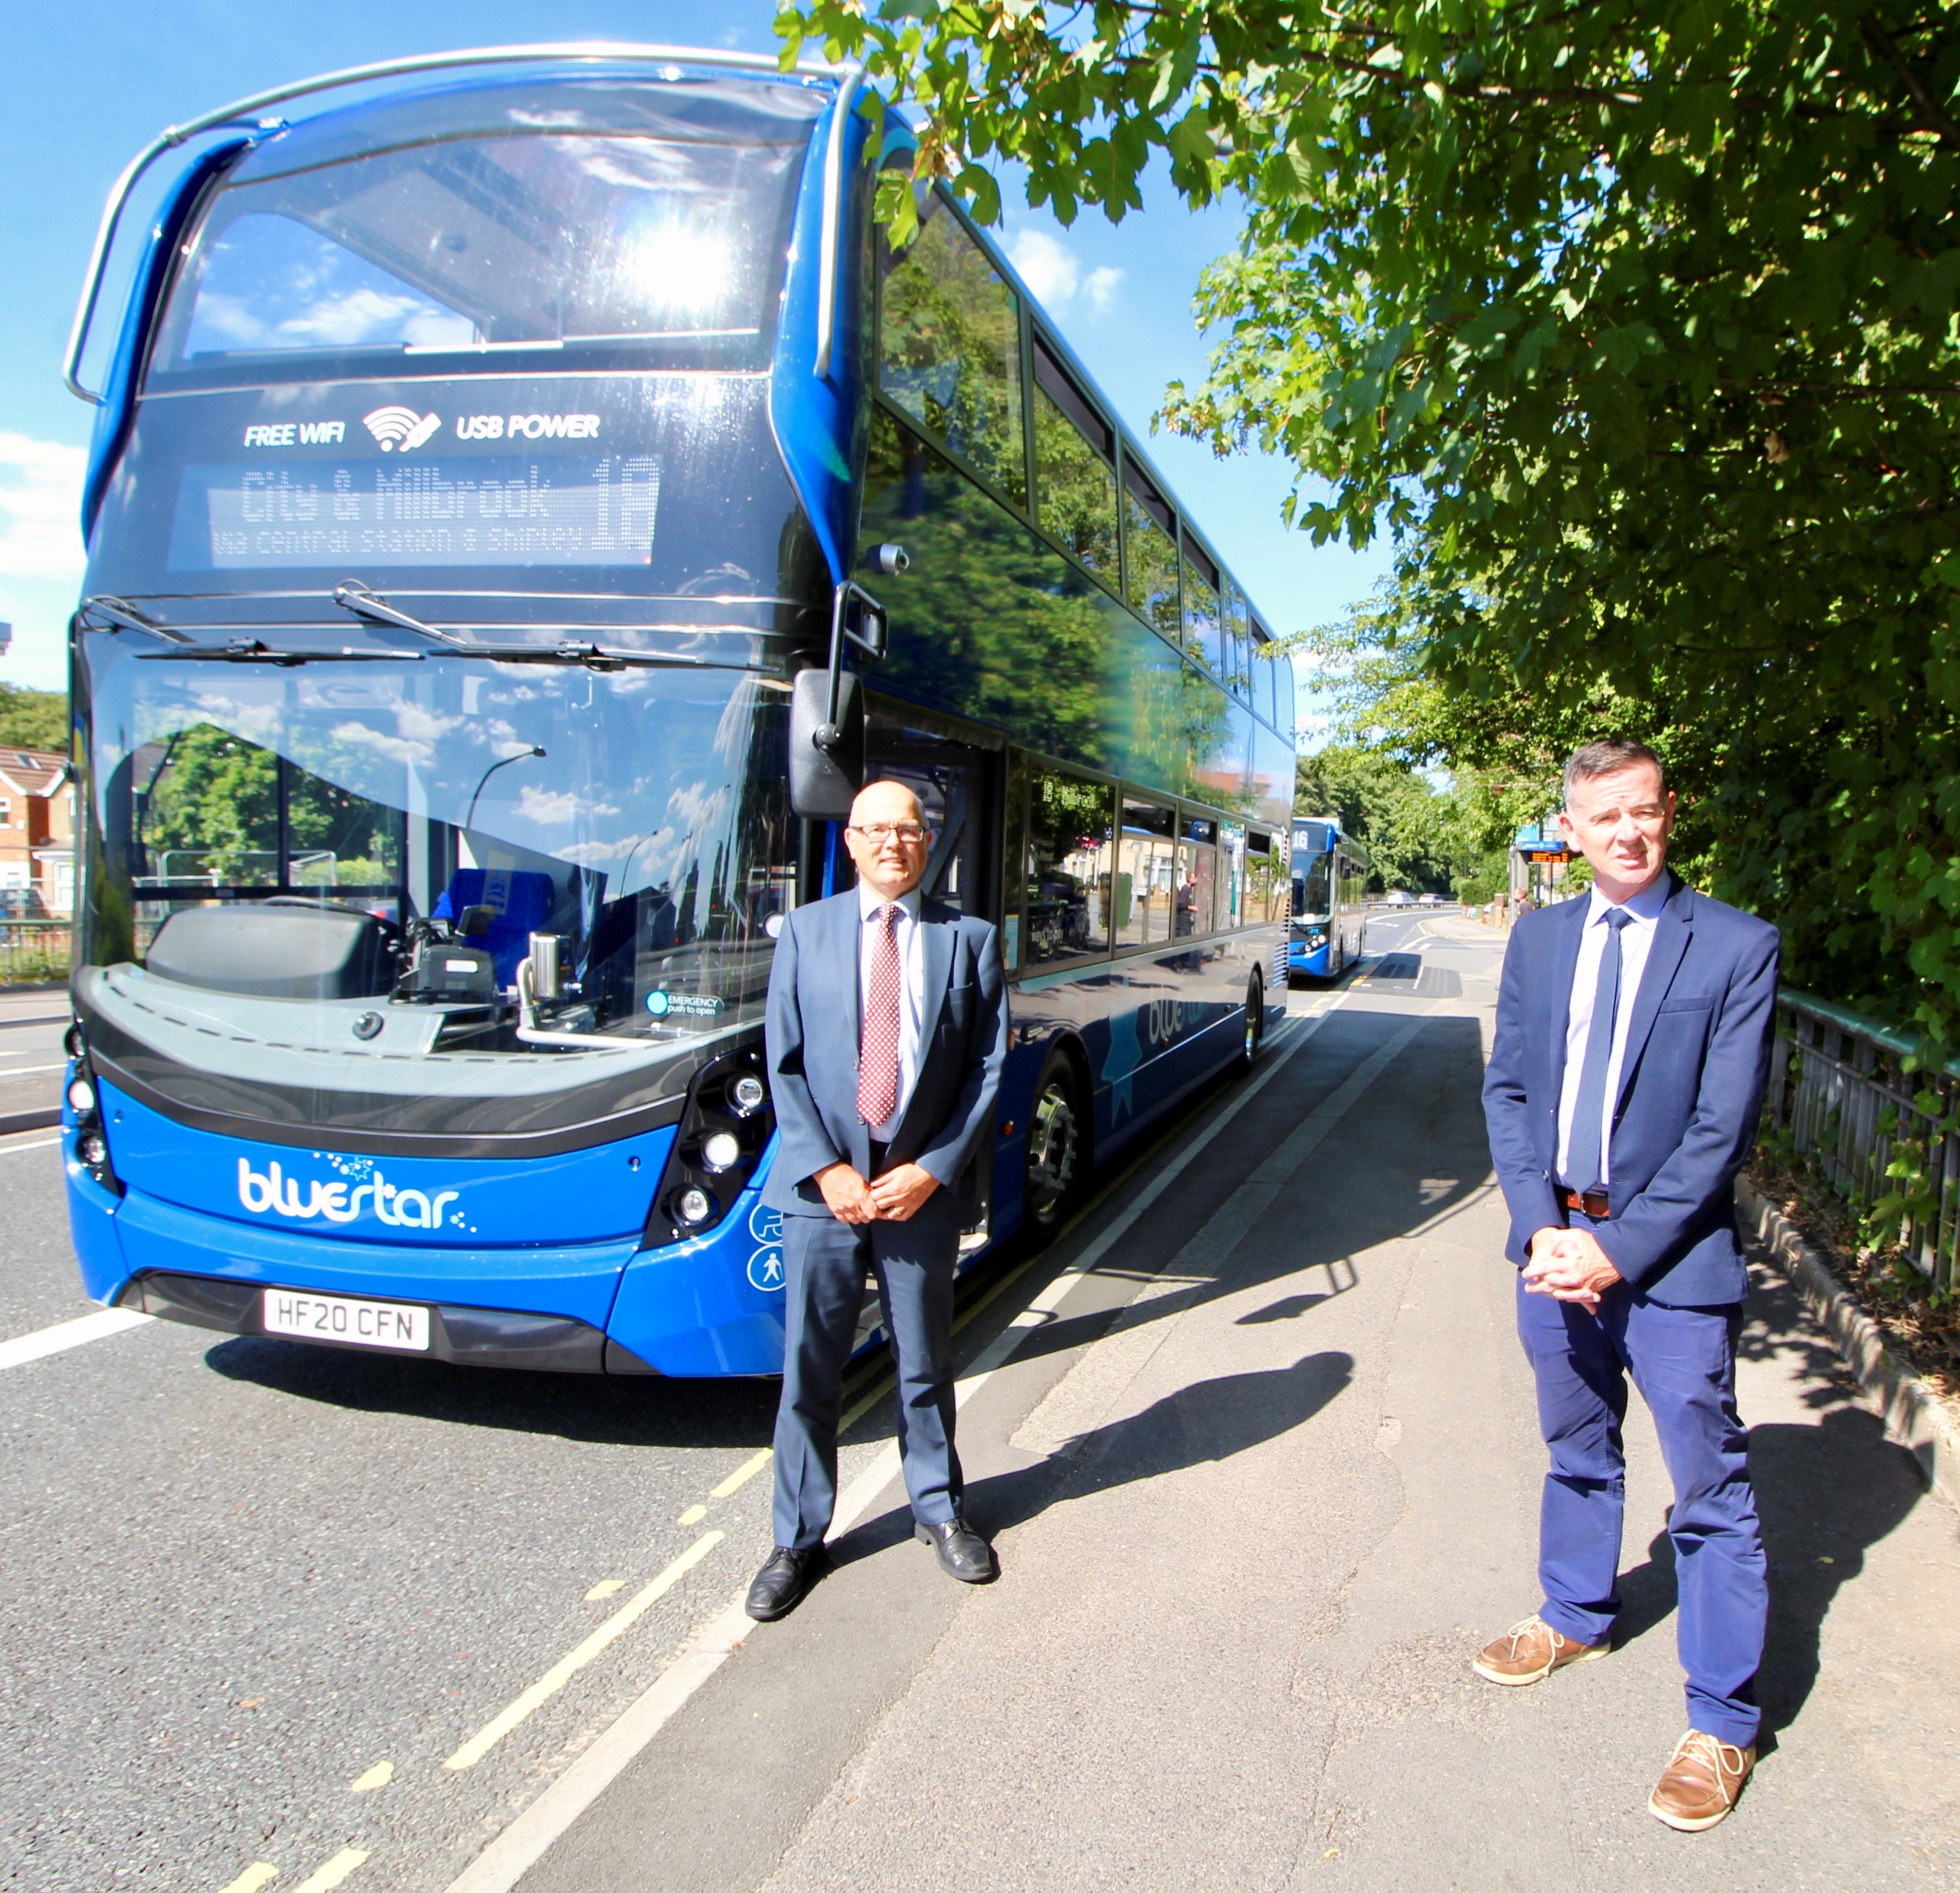 A photo of a new bluestar bus with our managing director, Andrew, with Southampton City Councillor, Steve.